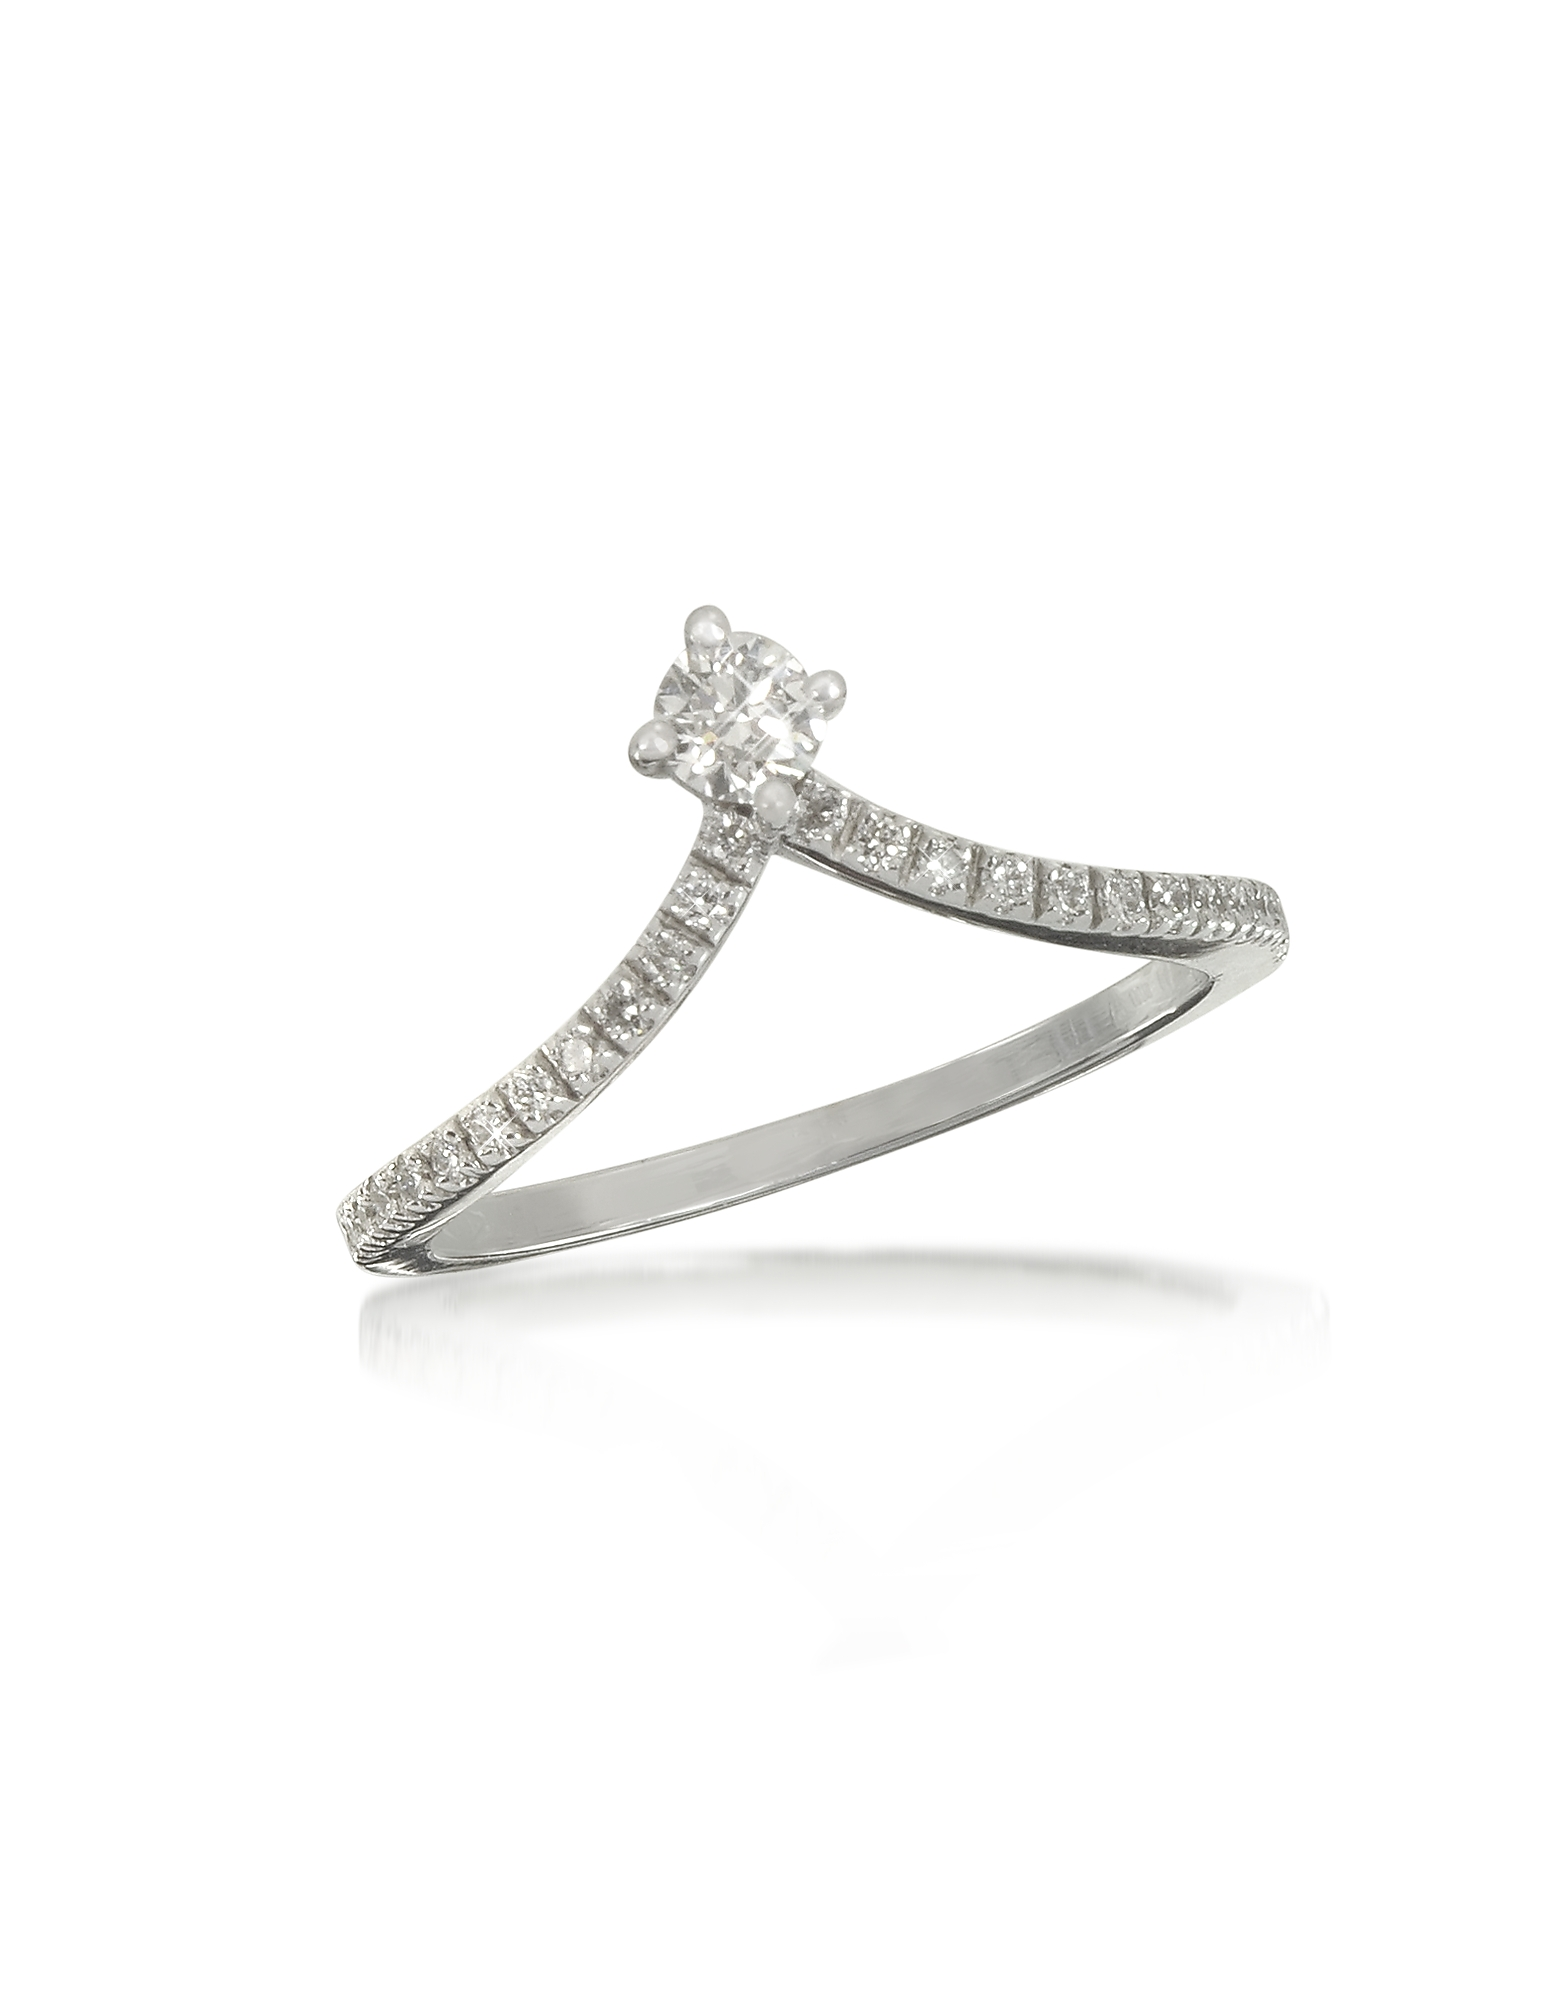 Image of 0.12 ctw Diamond 18K White Gold Solitaire Ring features a single round-cut diamond in a four-prong setting on a single 18K white gold swooping arrow shape band with pavè diamonds. Handmade in Italy. Custom size available. fz410217-001-00